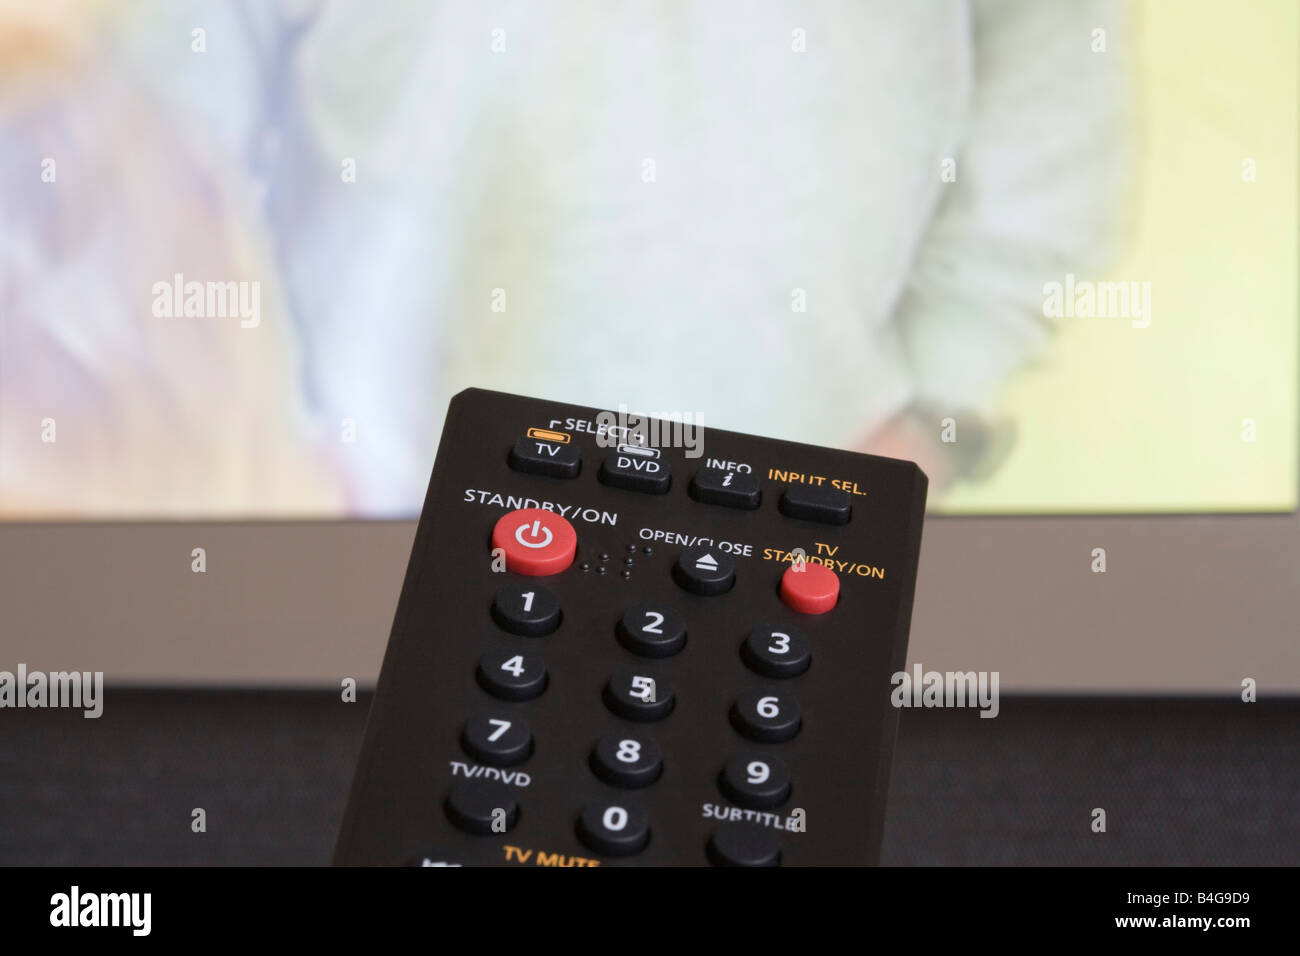 TV remote control with red standby button and television screen transmitting behind - Stock Image